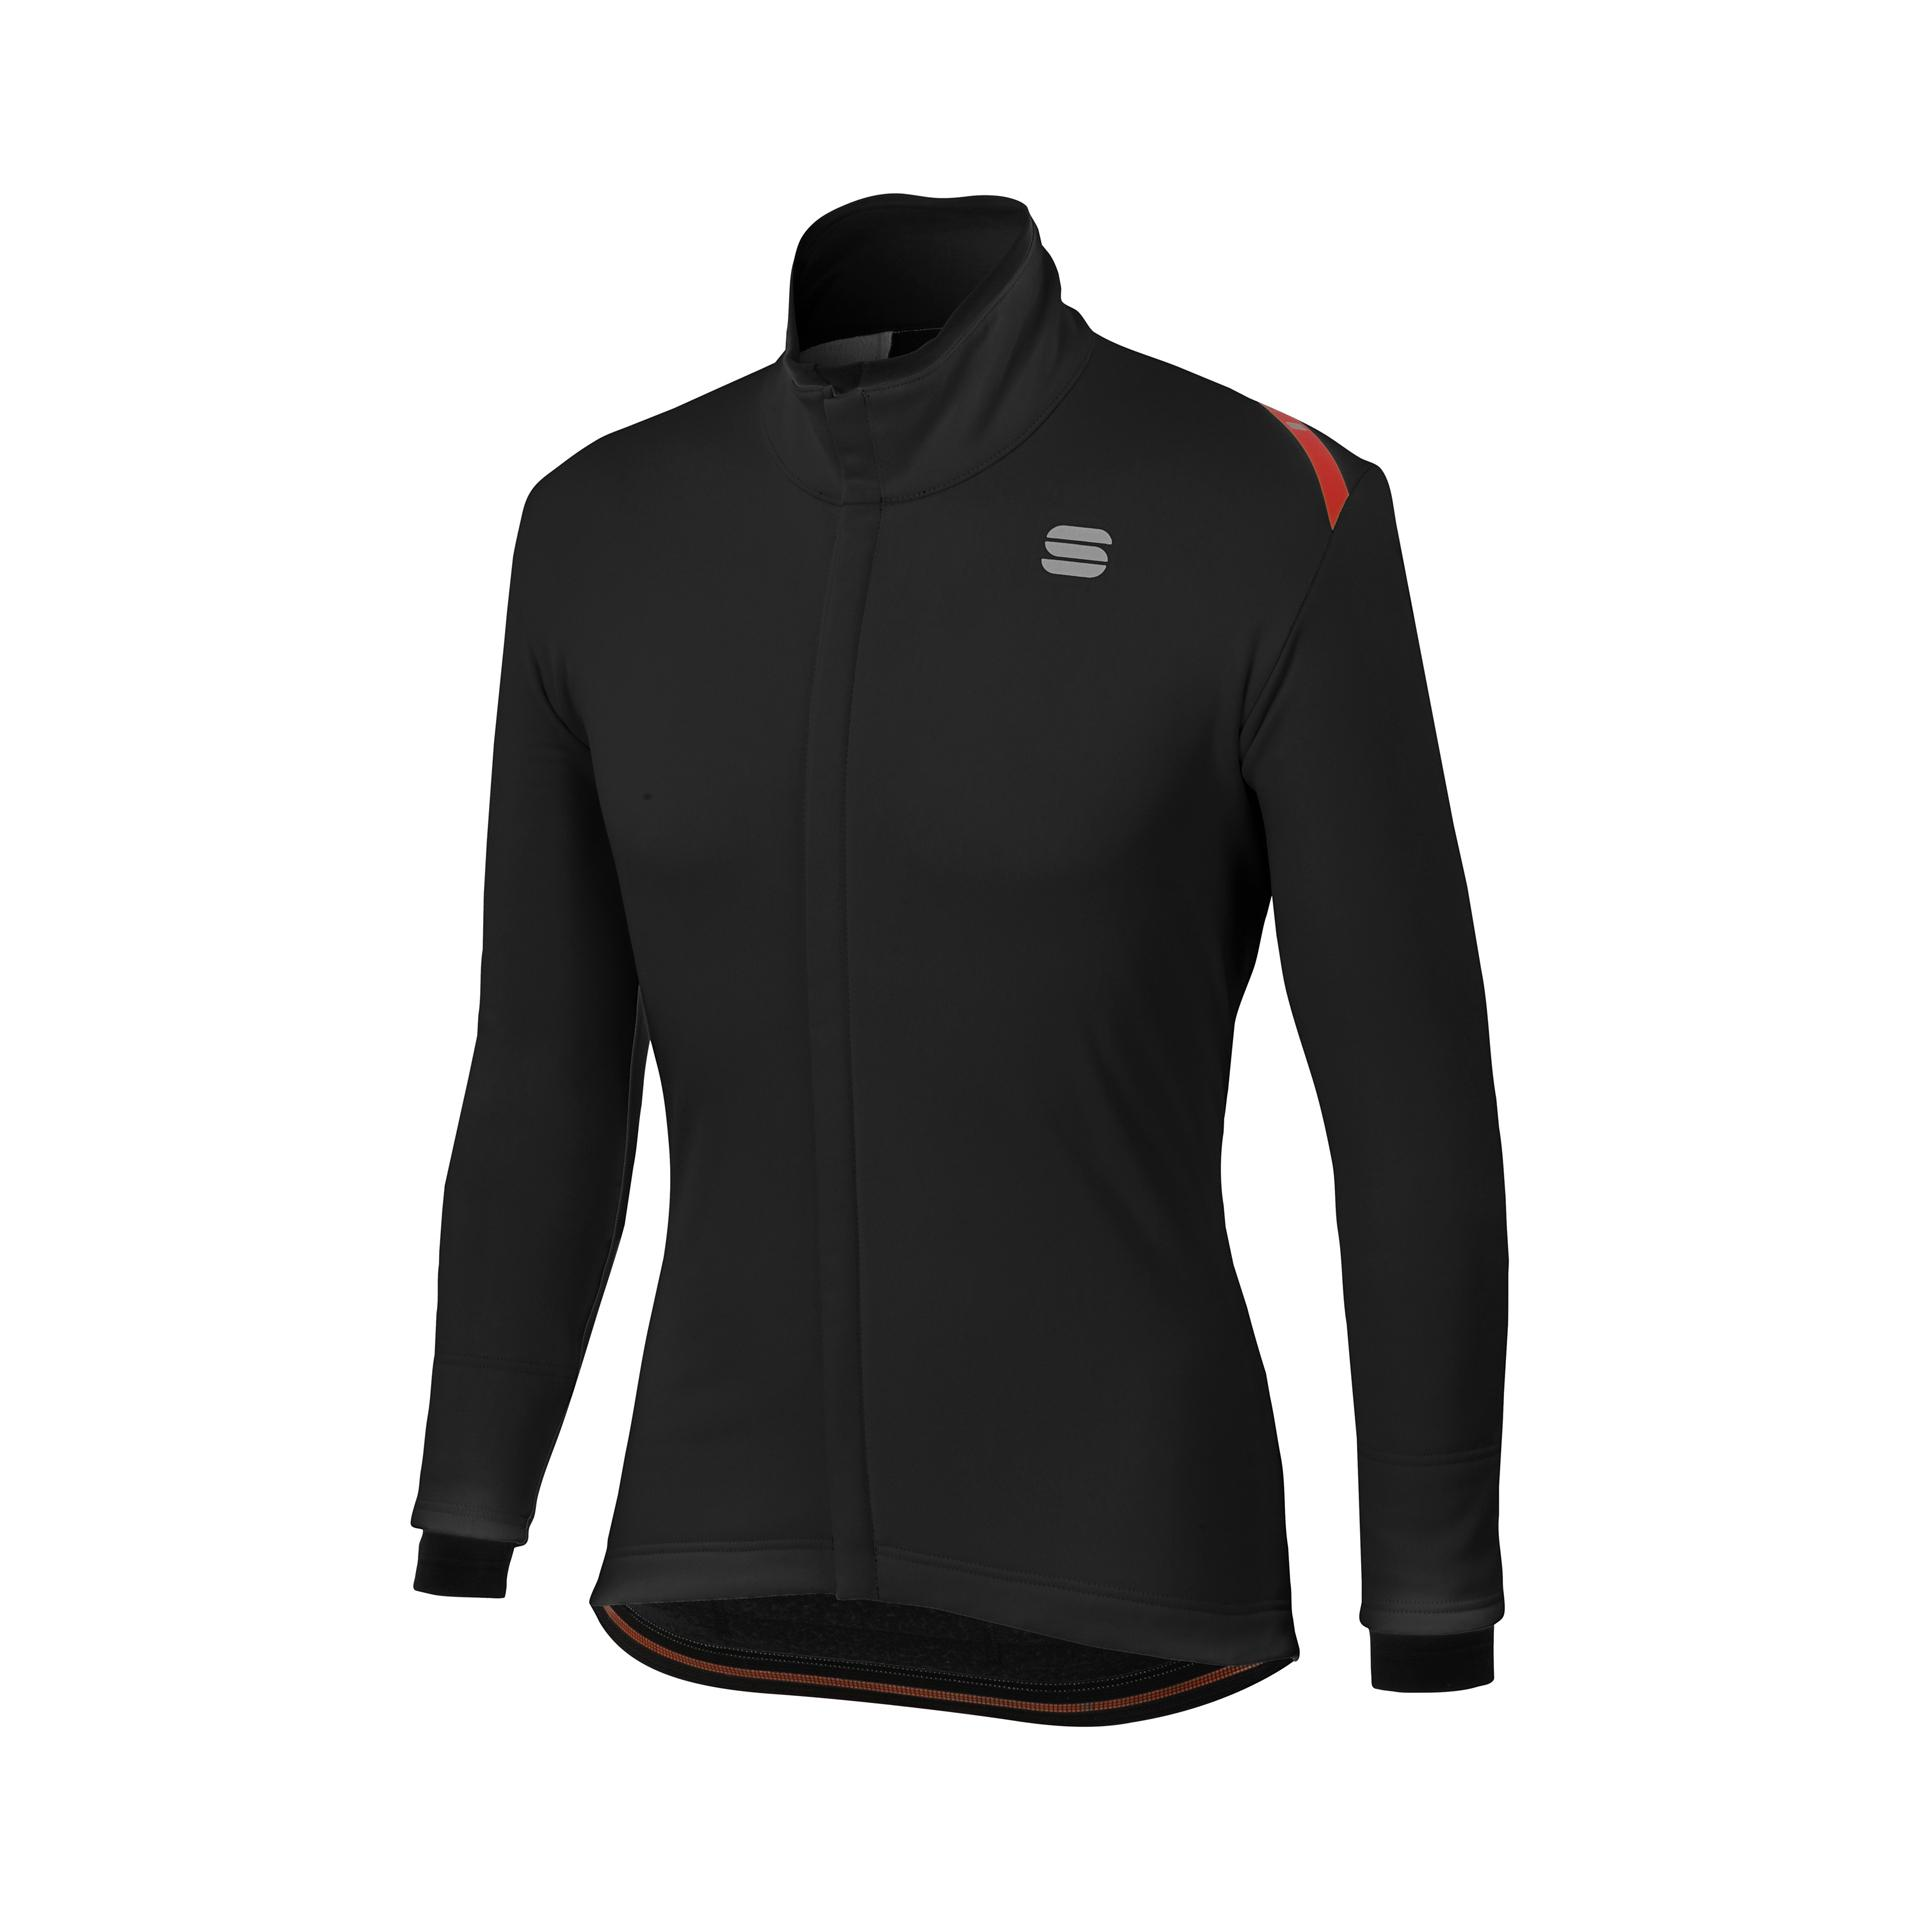 Sportful Fietsjack Heren Zwart / SF Fiandre Thermo Cabrio Jacket-Black